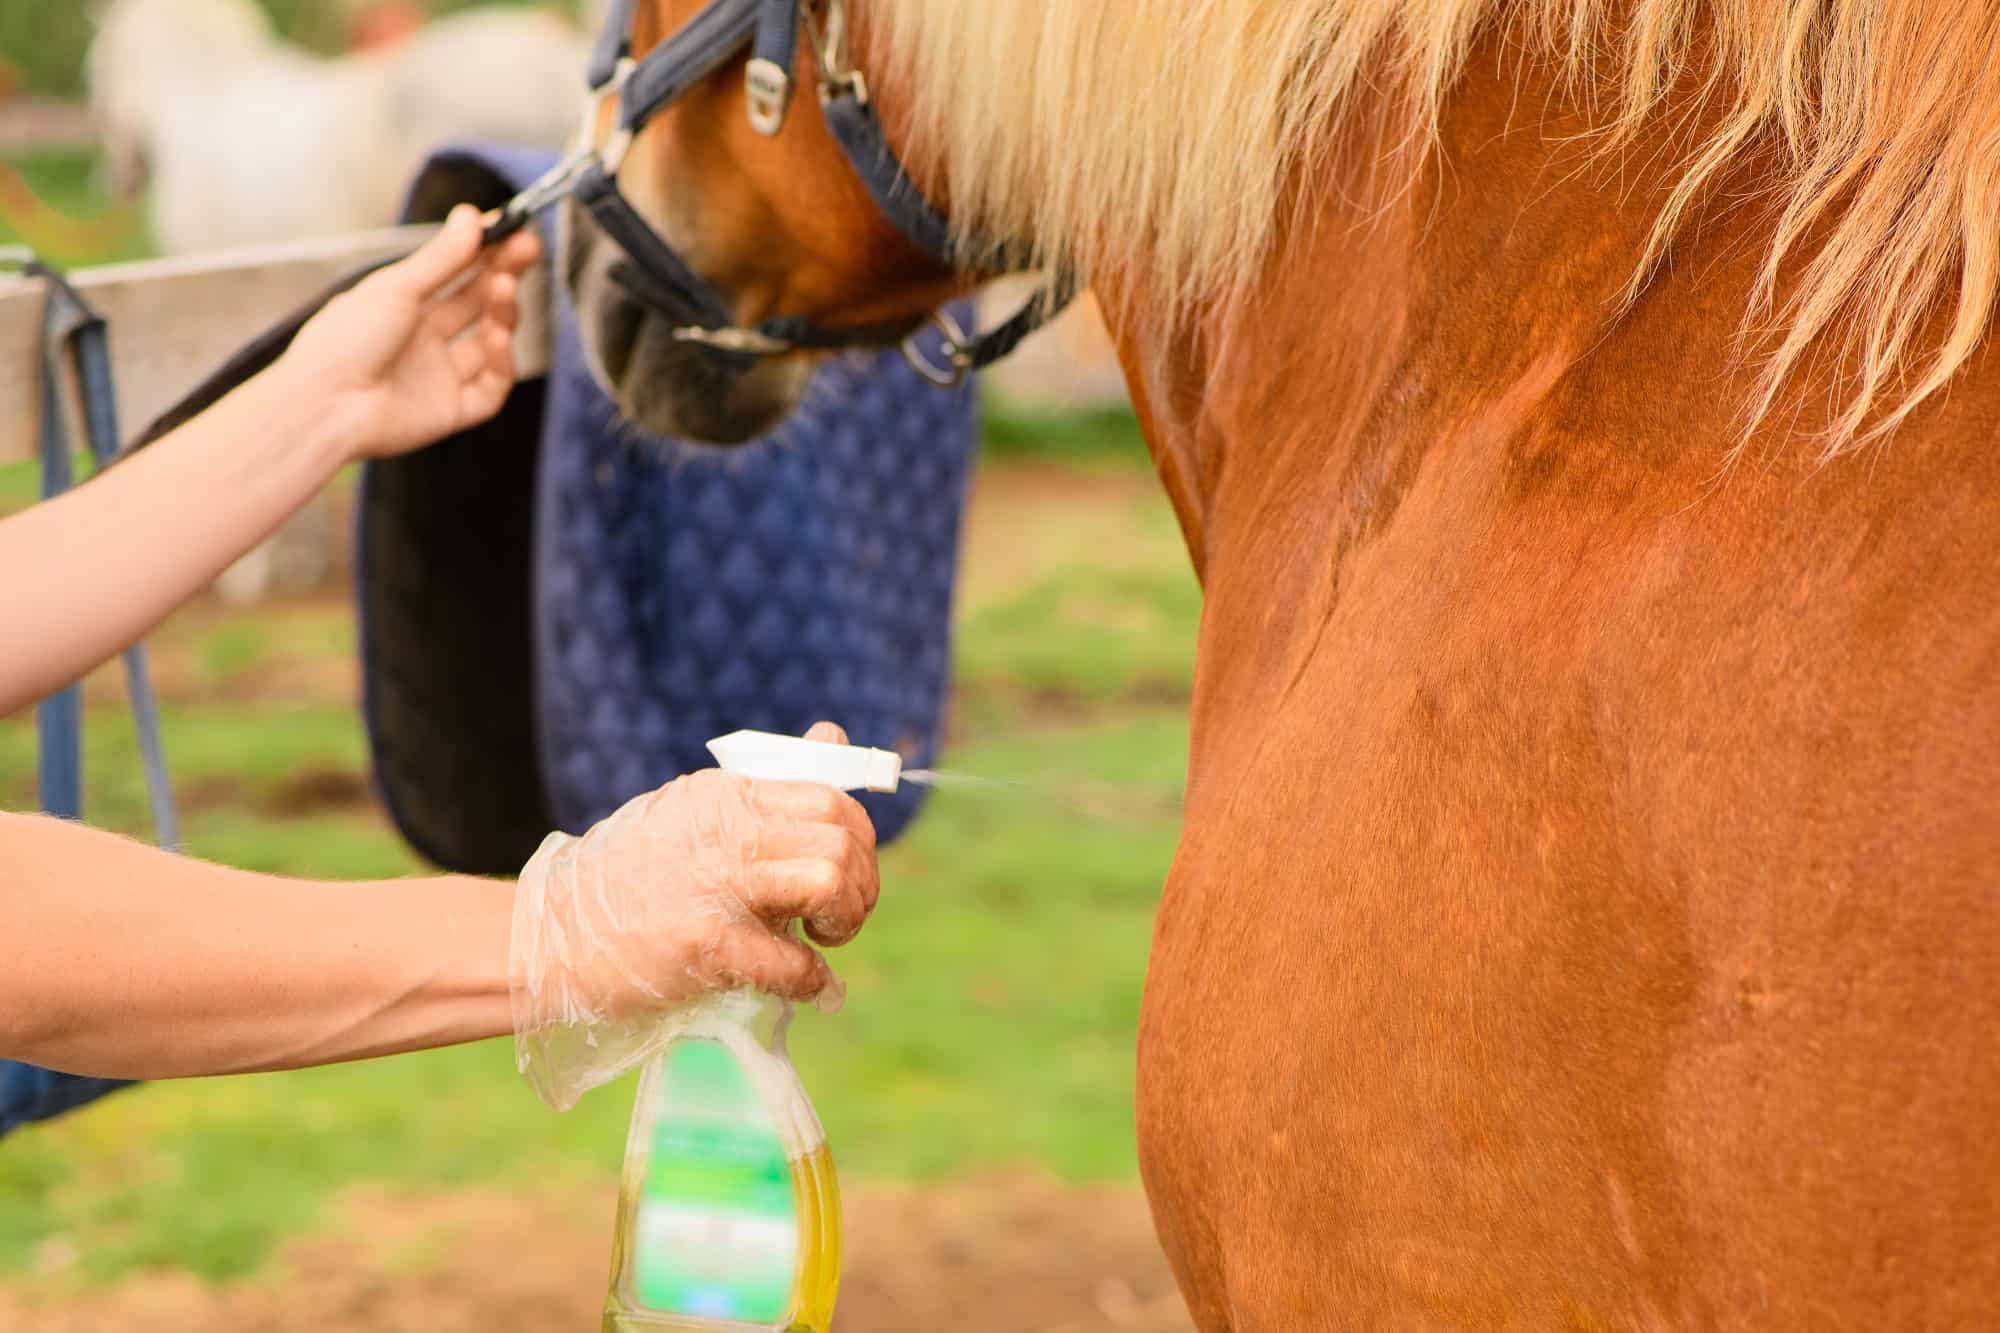 how to Get Rid of Horse Fly